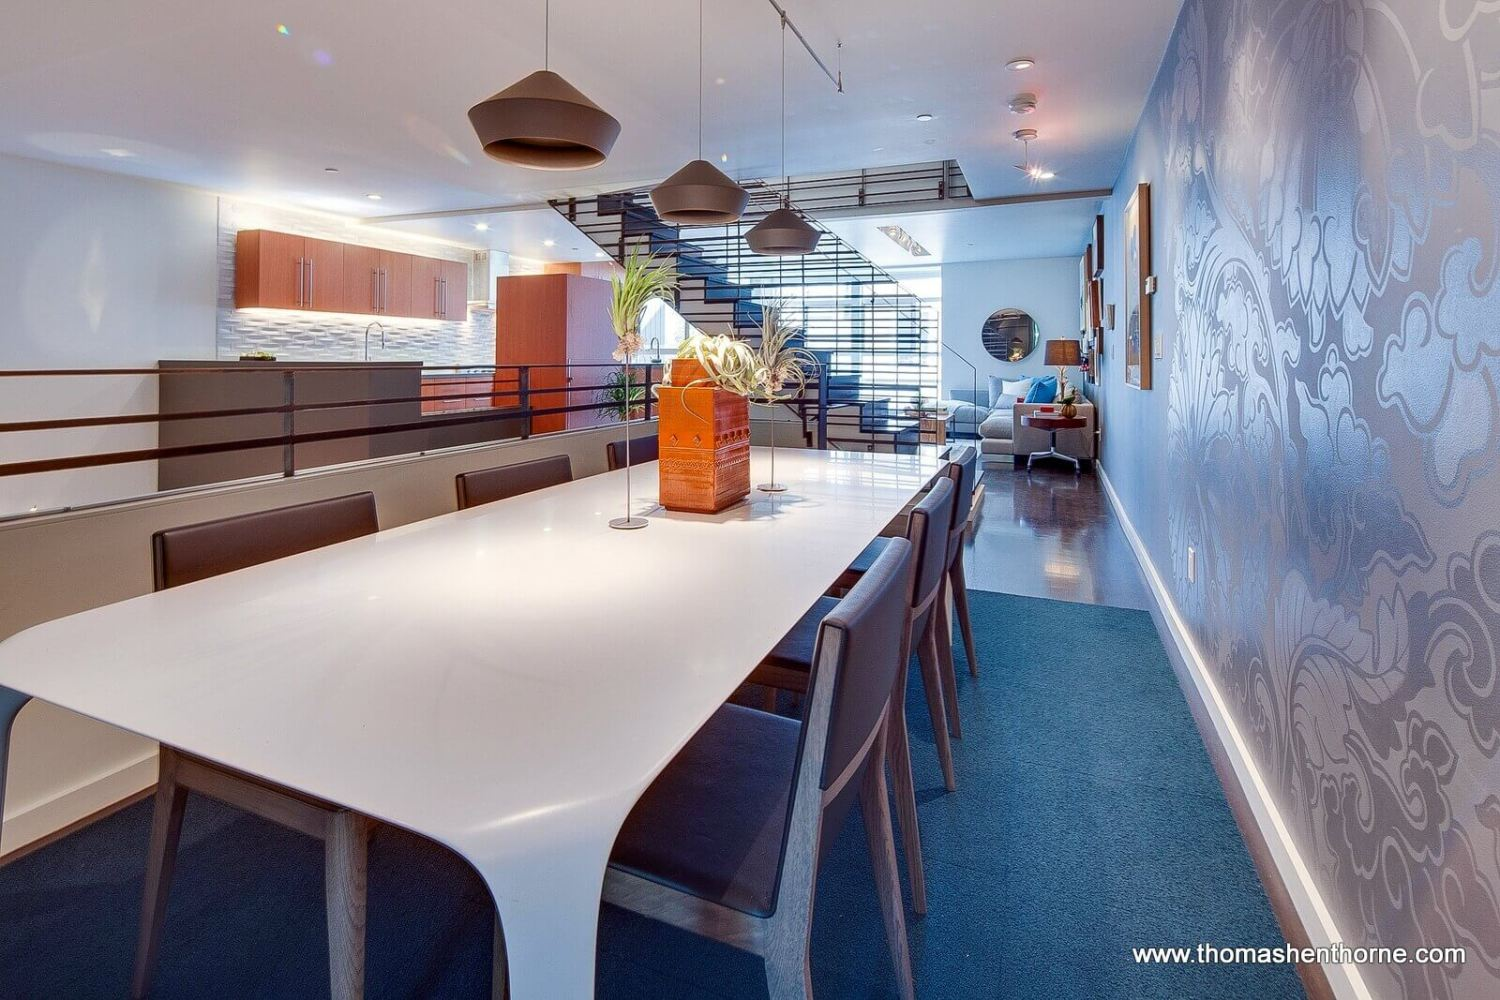 Dining area with view of kitchen and second living room